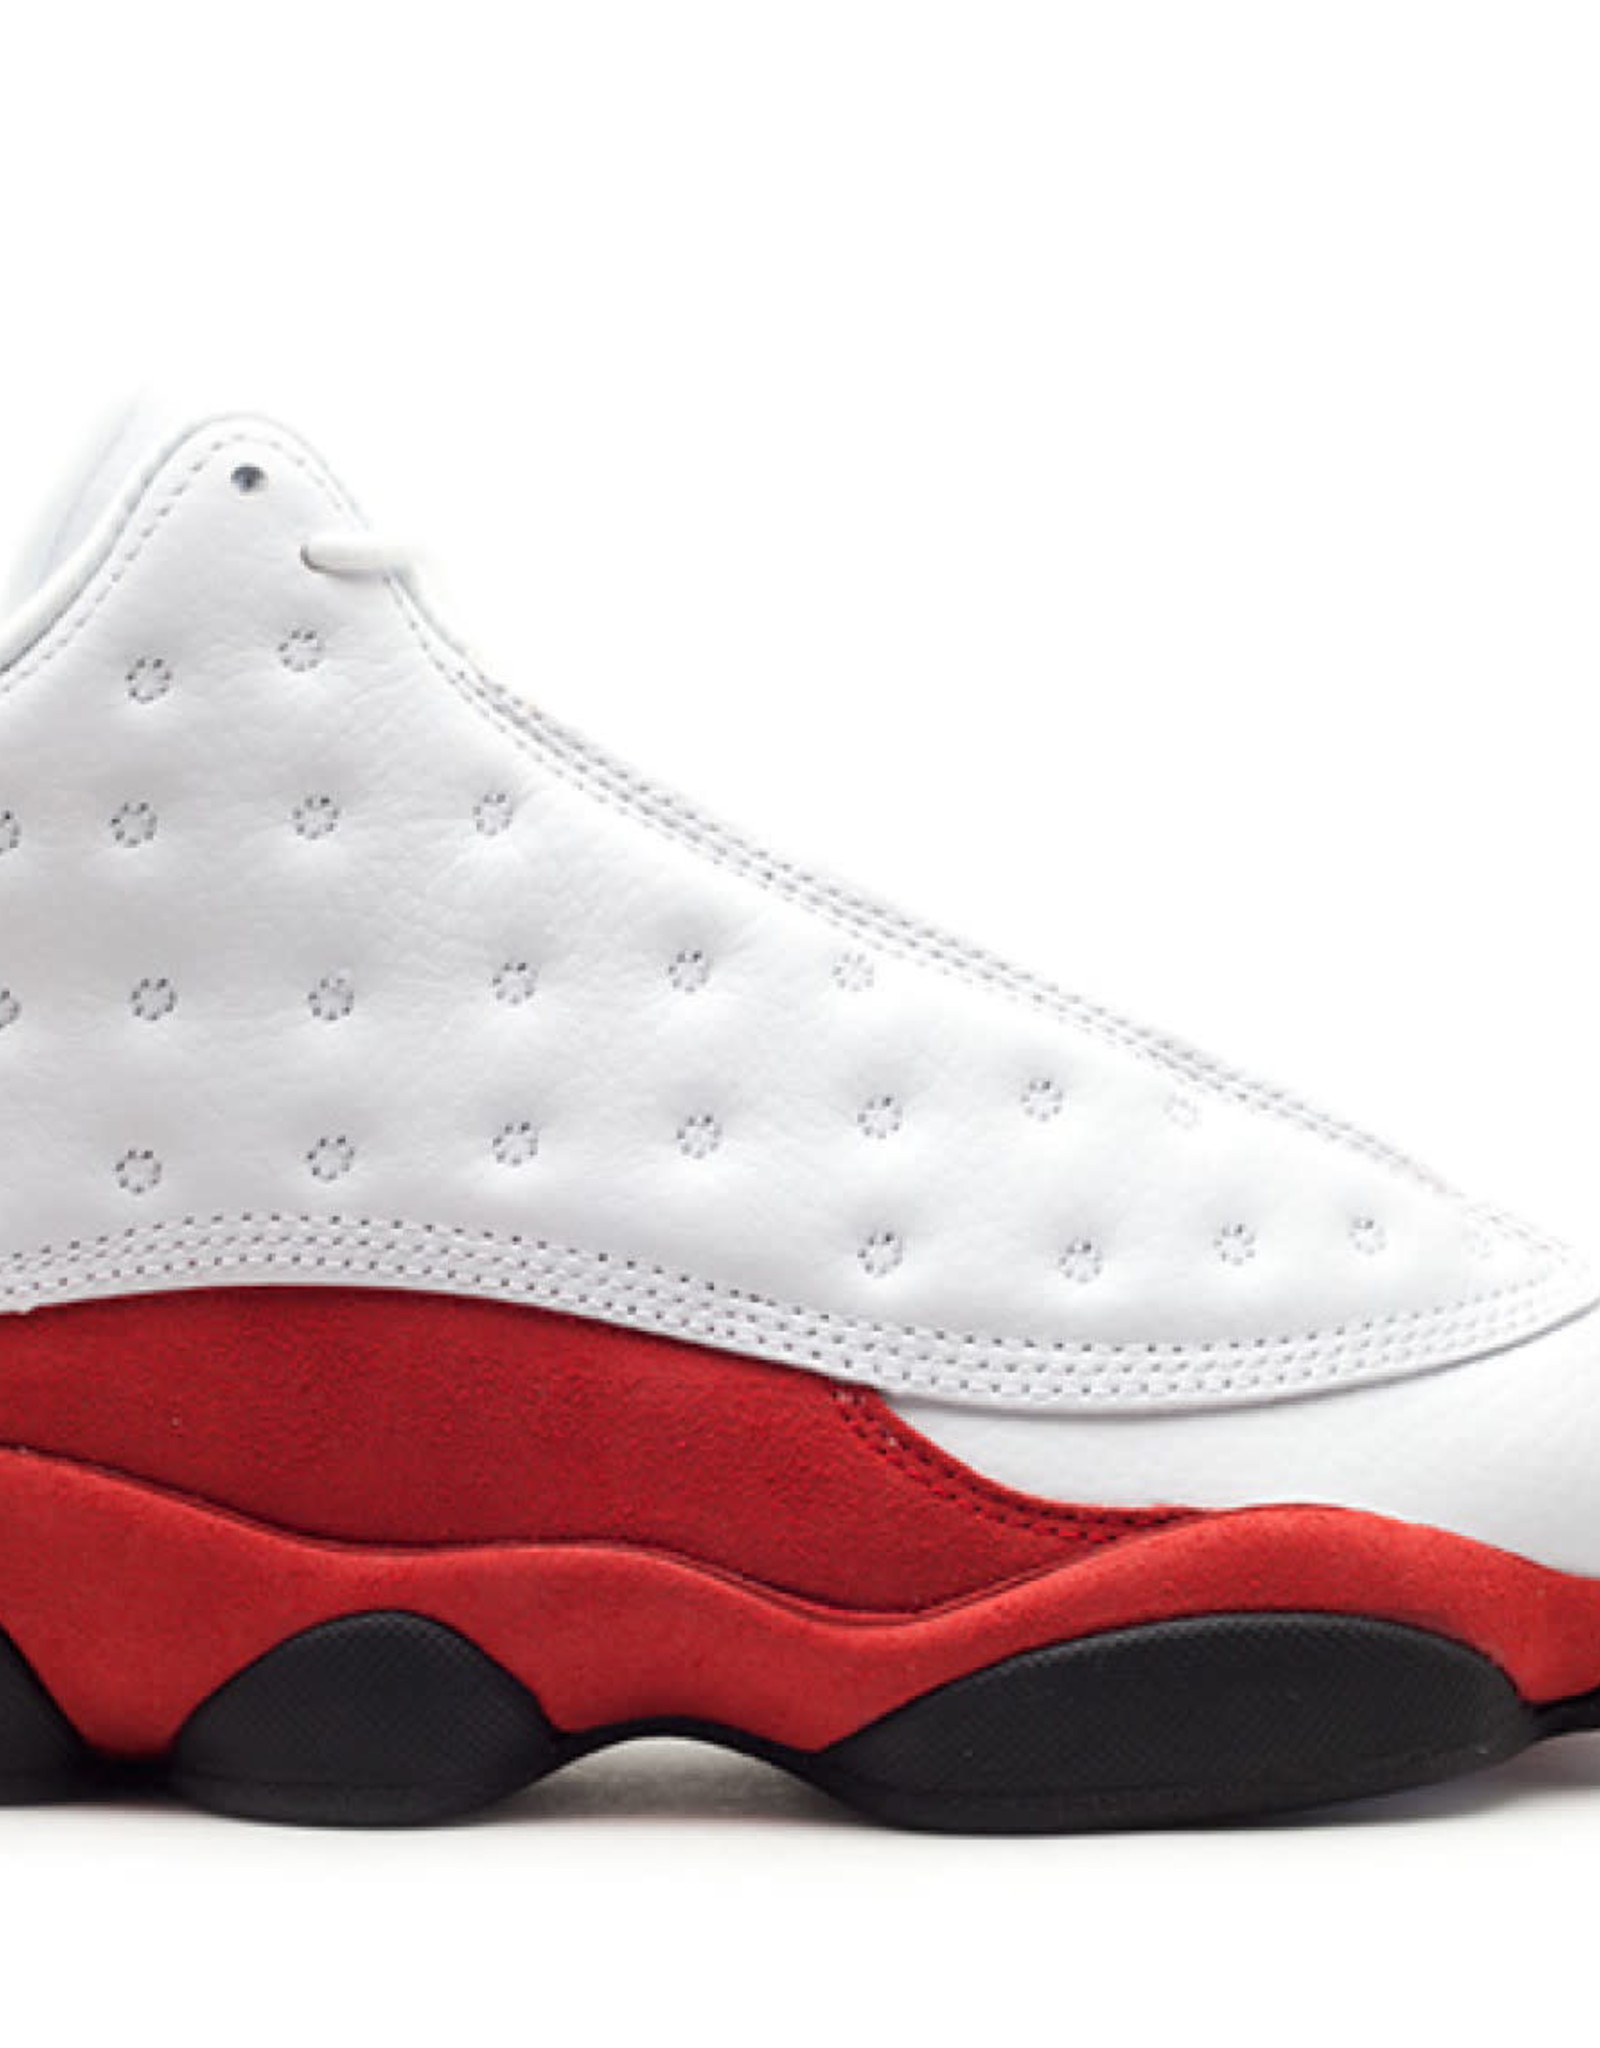 "JORDAN AIR JORDAN 13 RETRO ""CHICAGO 2017"""